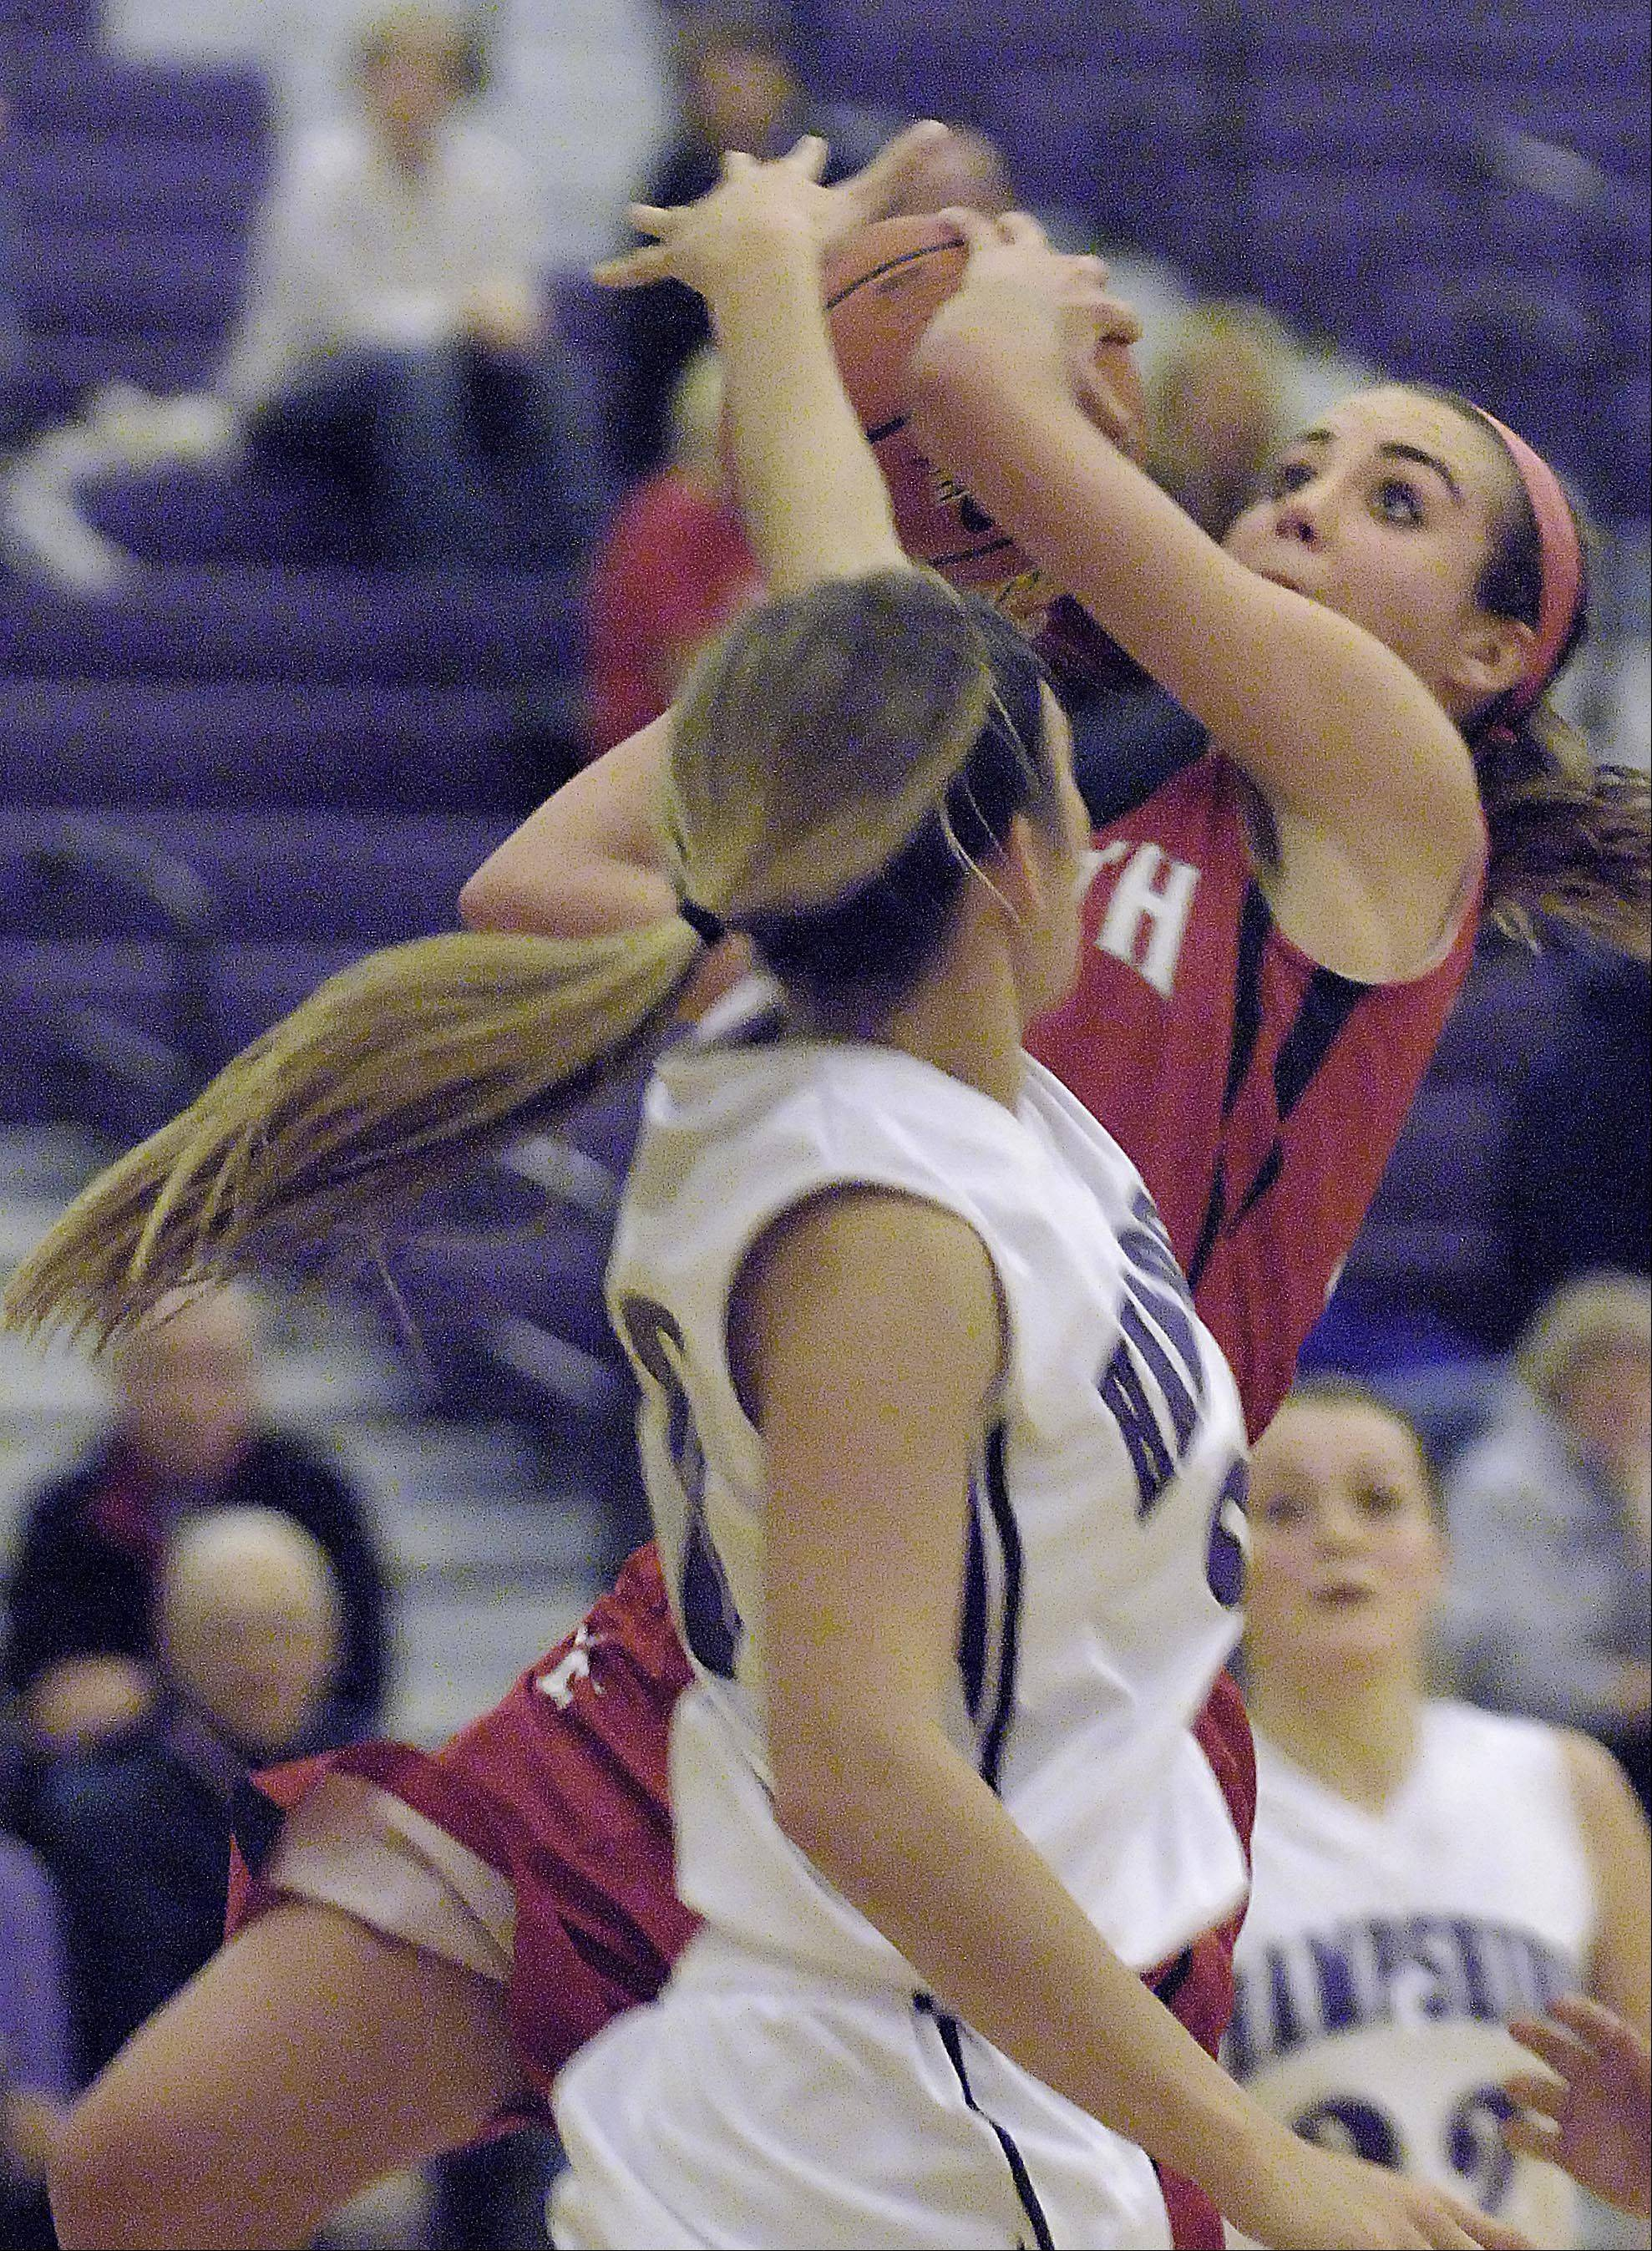 South Elgin's Delaney Kelleher drives on Hampshire's Lizzy Panzica Wednesday in Hampshire.